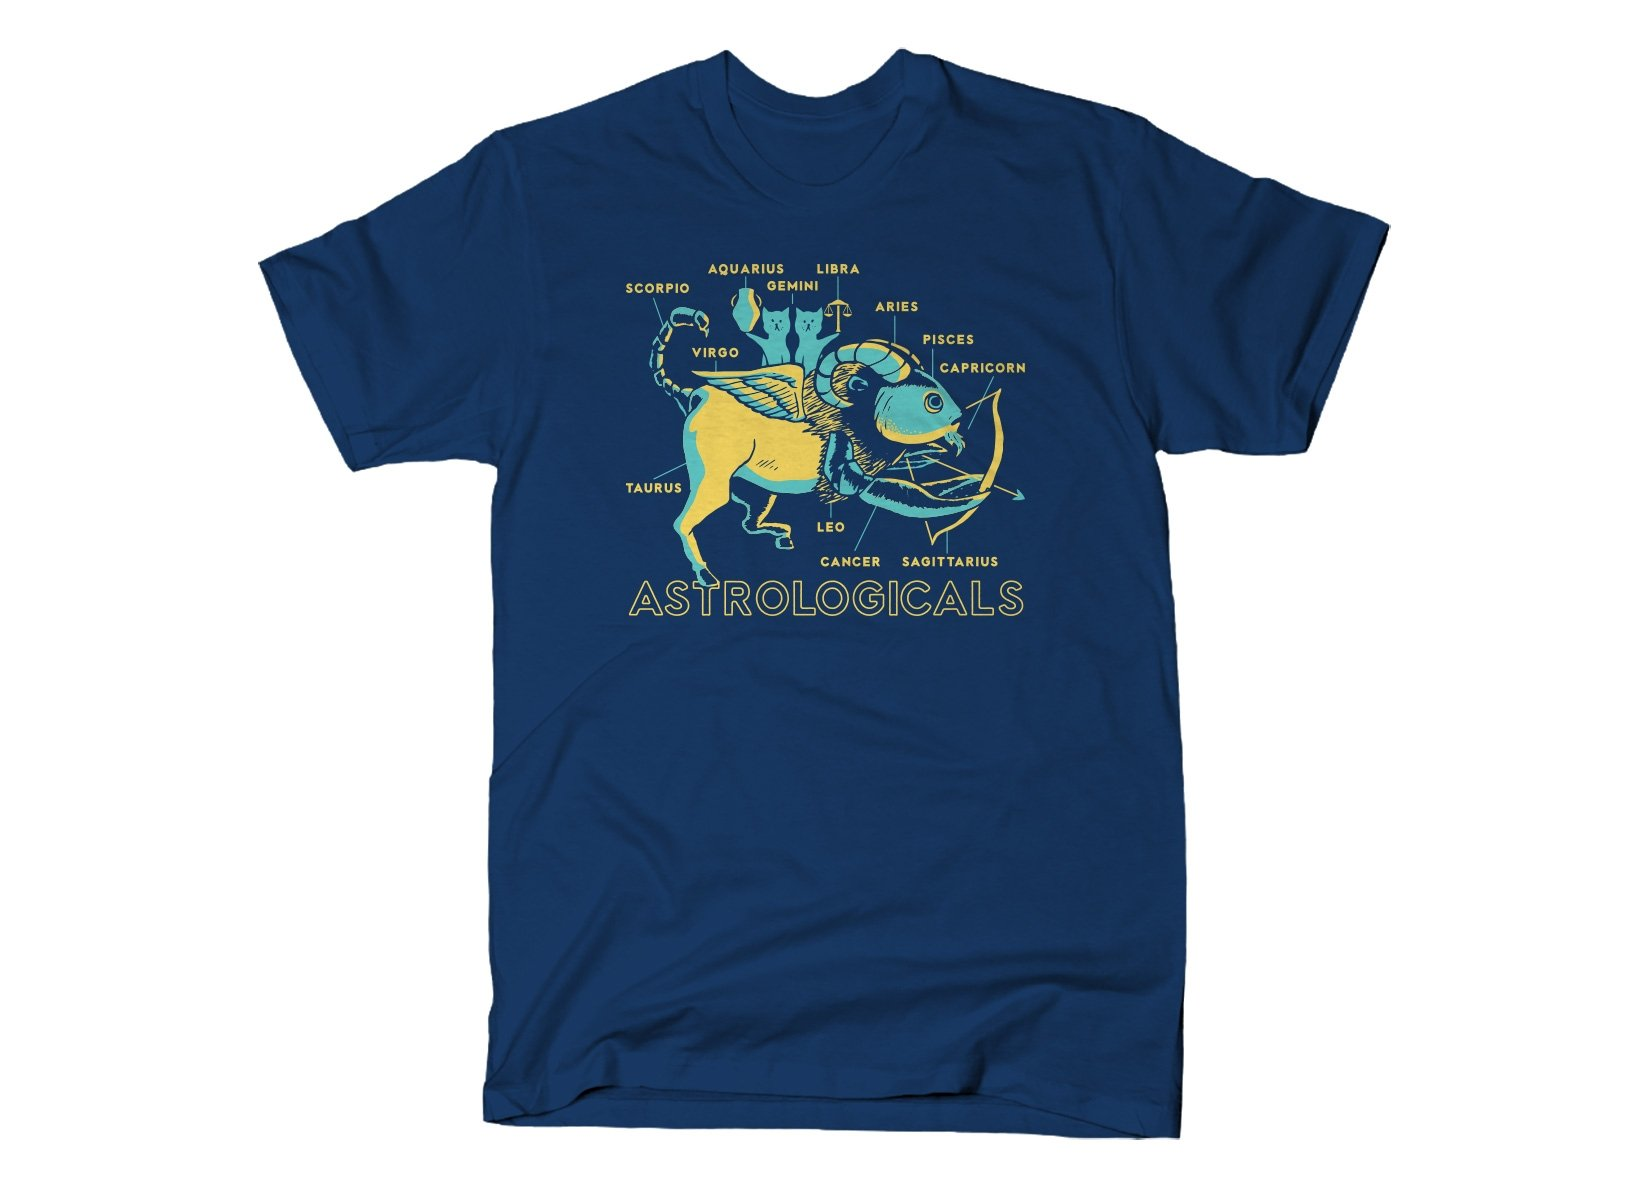 Astrologicals on Mens T-Shirt